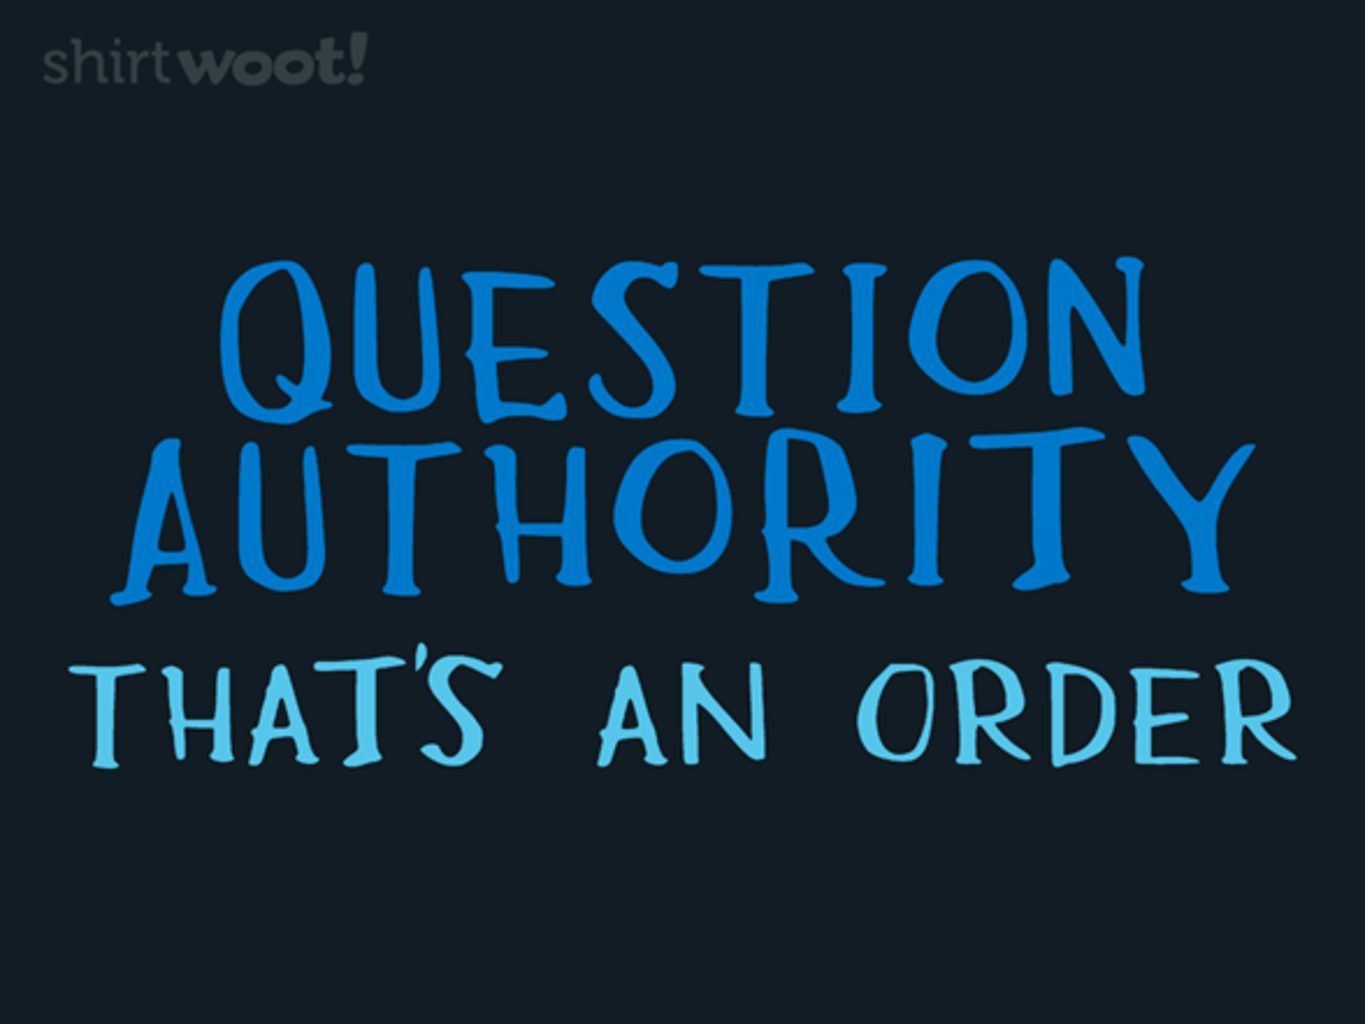 Woot!: Question Authority